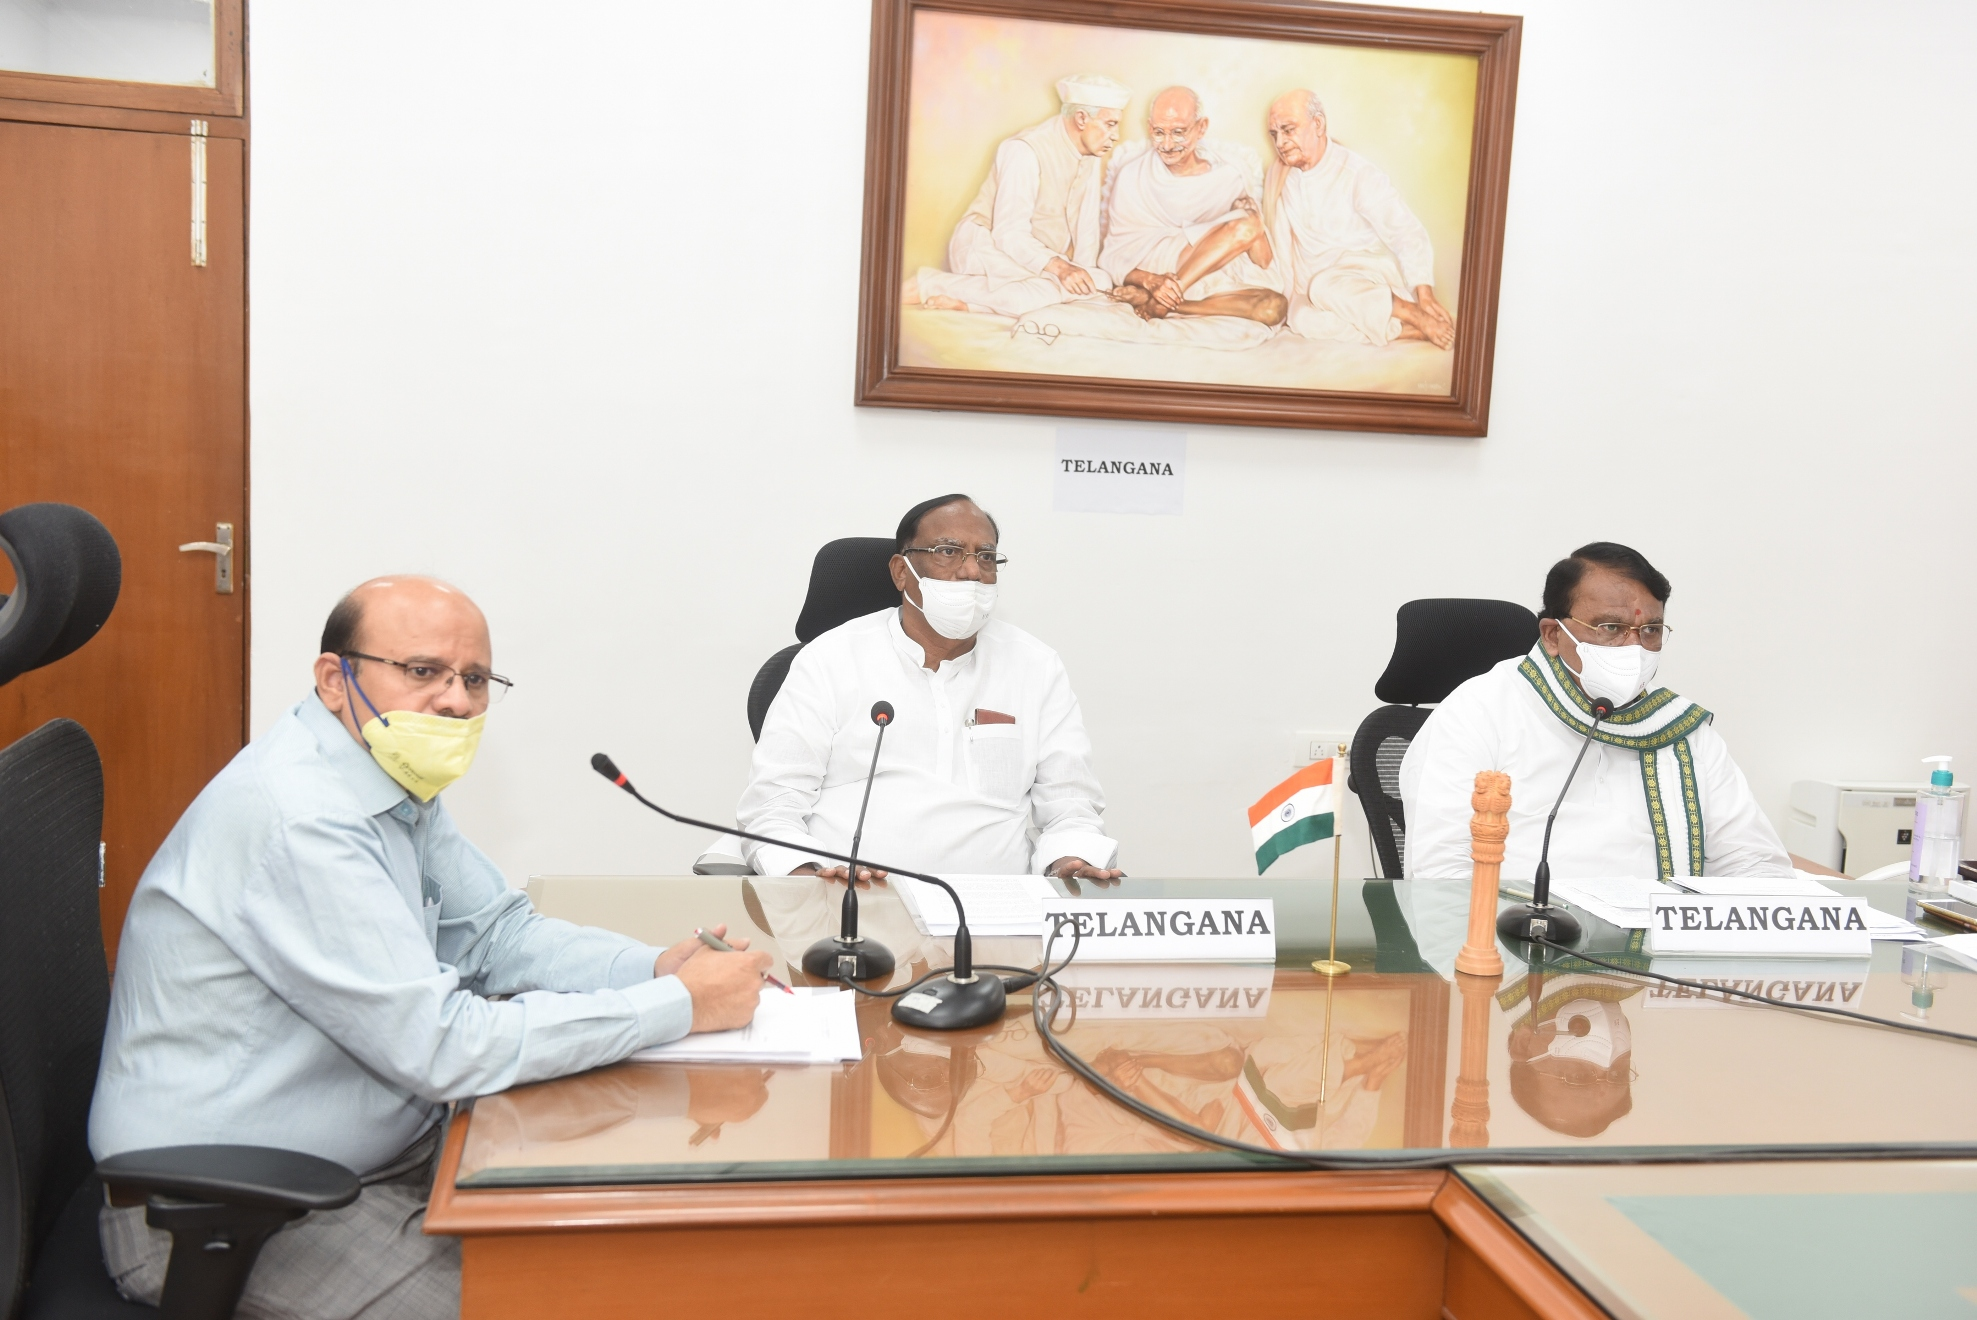 https://legislation.telanganalegislature.org.in//PreviewPage.tsl?filePath=basePath&fileName=Gallery/Presiding Officers of Telangana Legislature Video Conference with Honourable Speaker, Lok Sabha on 21.04.2020./5.JPG